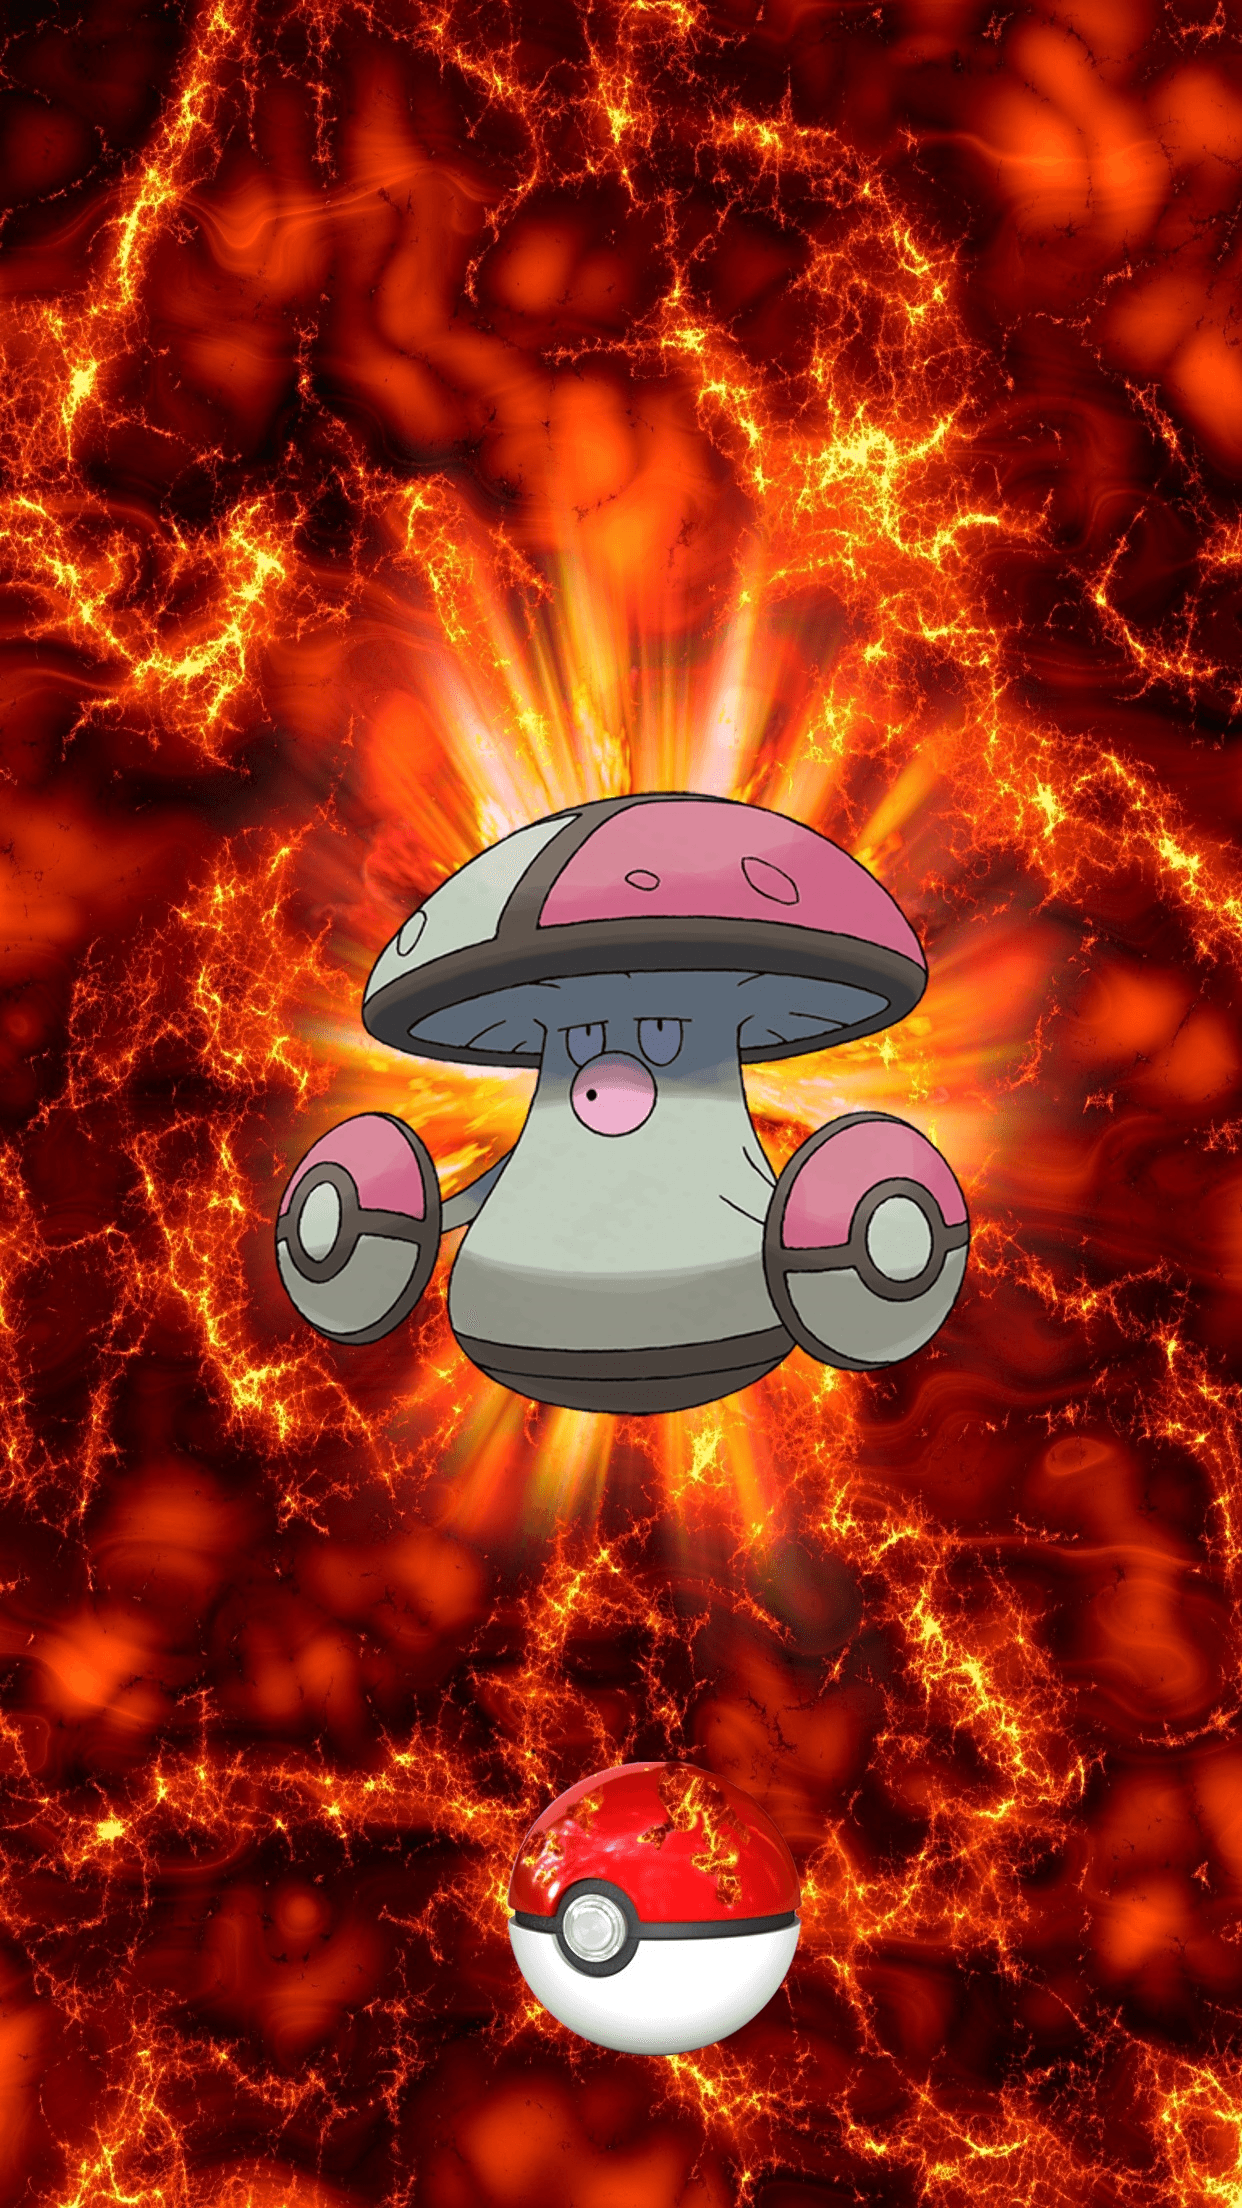 591 Fire Pokeball Amoonguss Morobareru 102 Foongus | Wallpaper